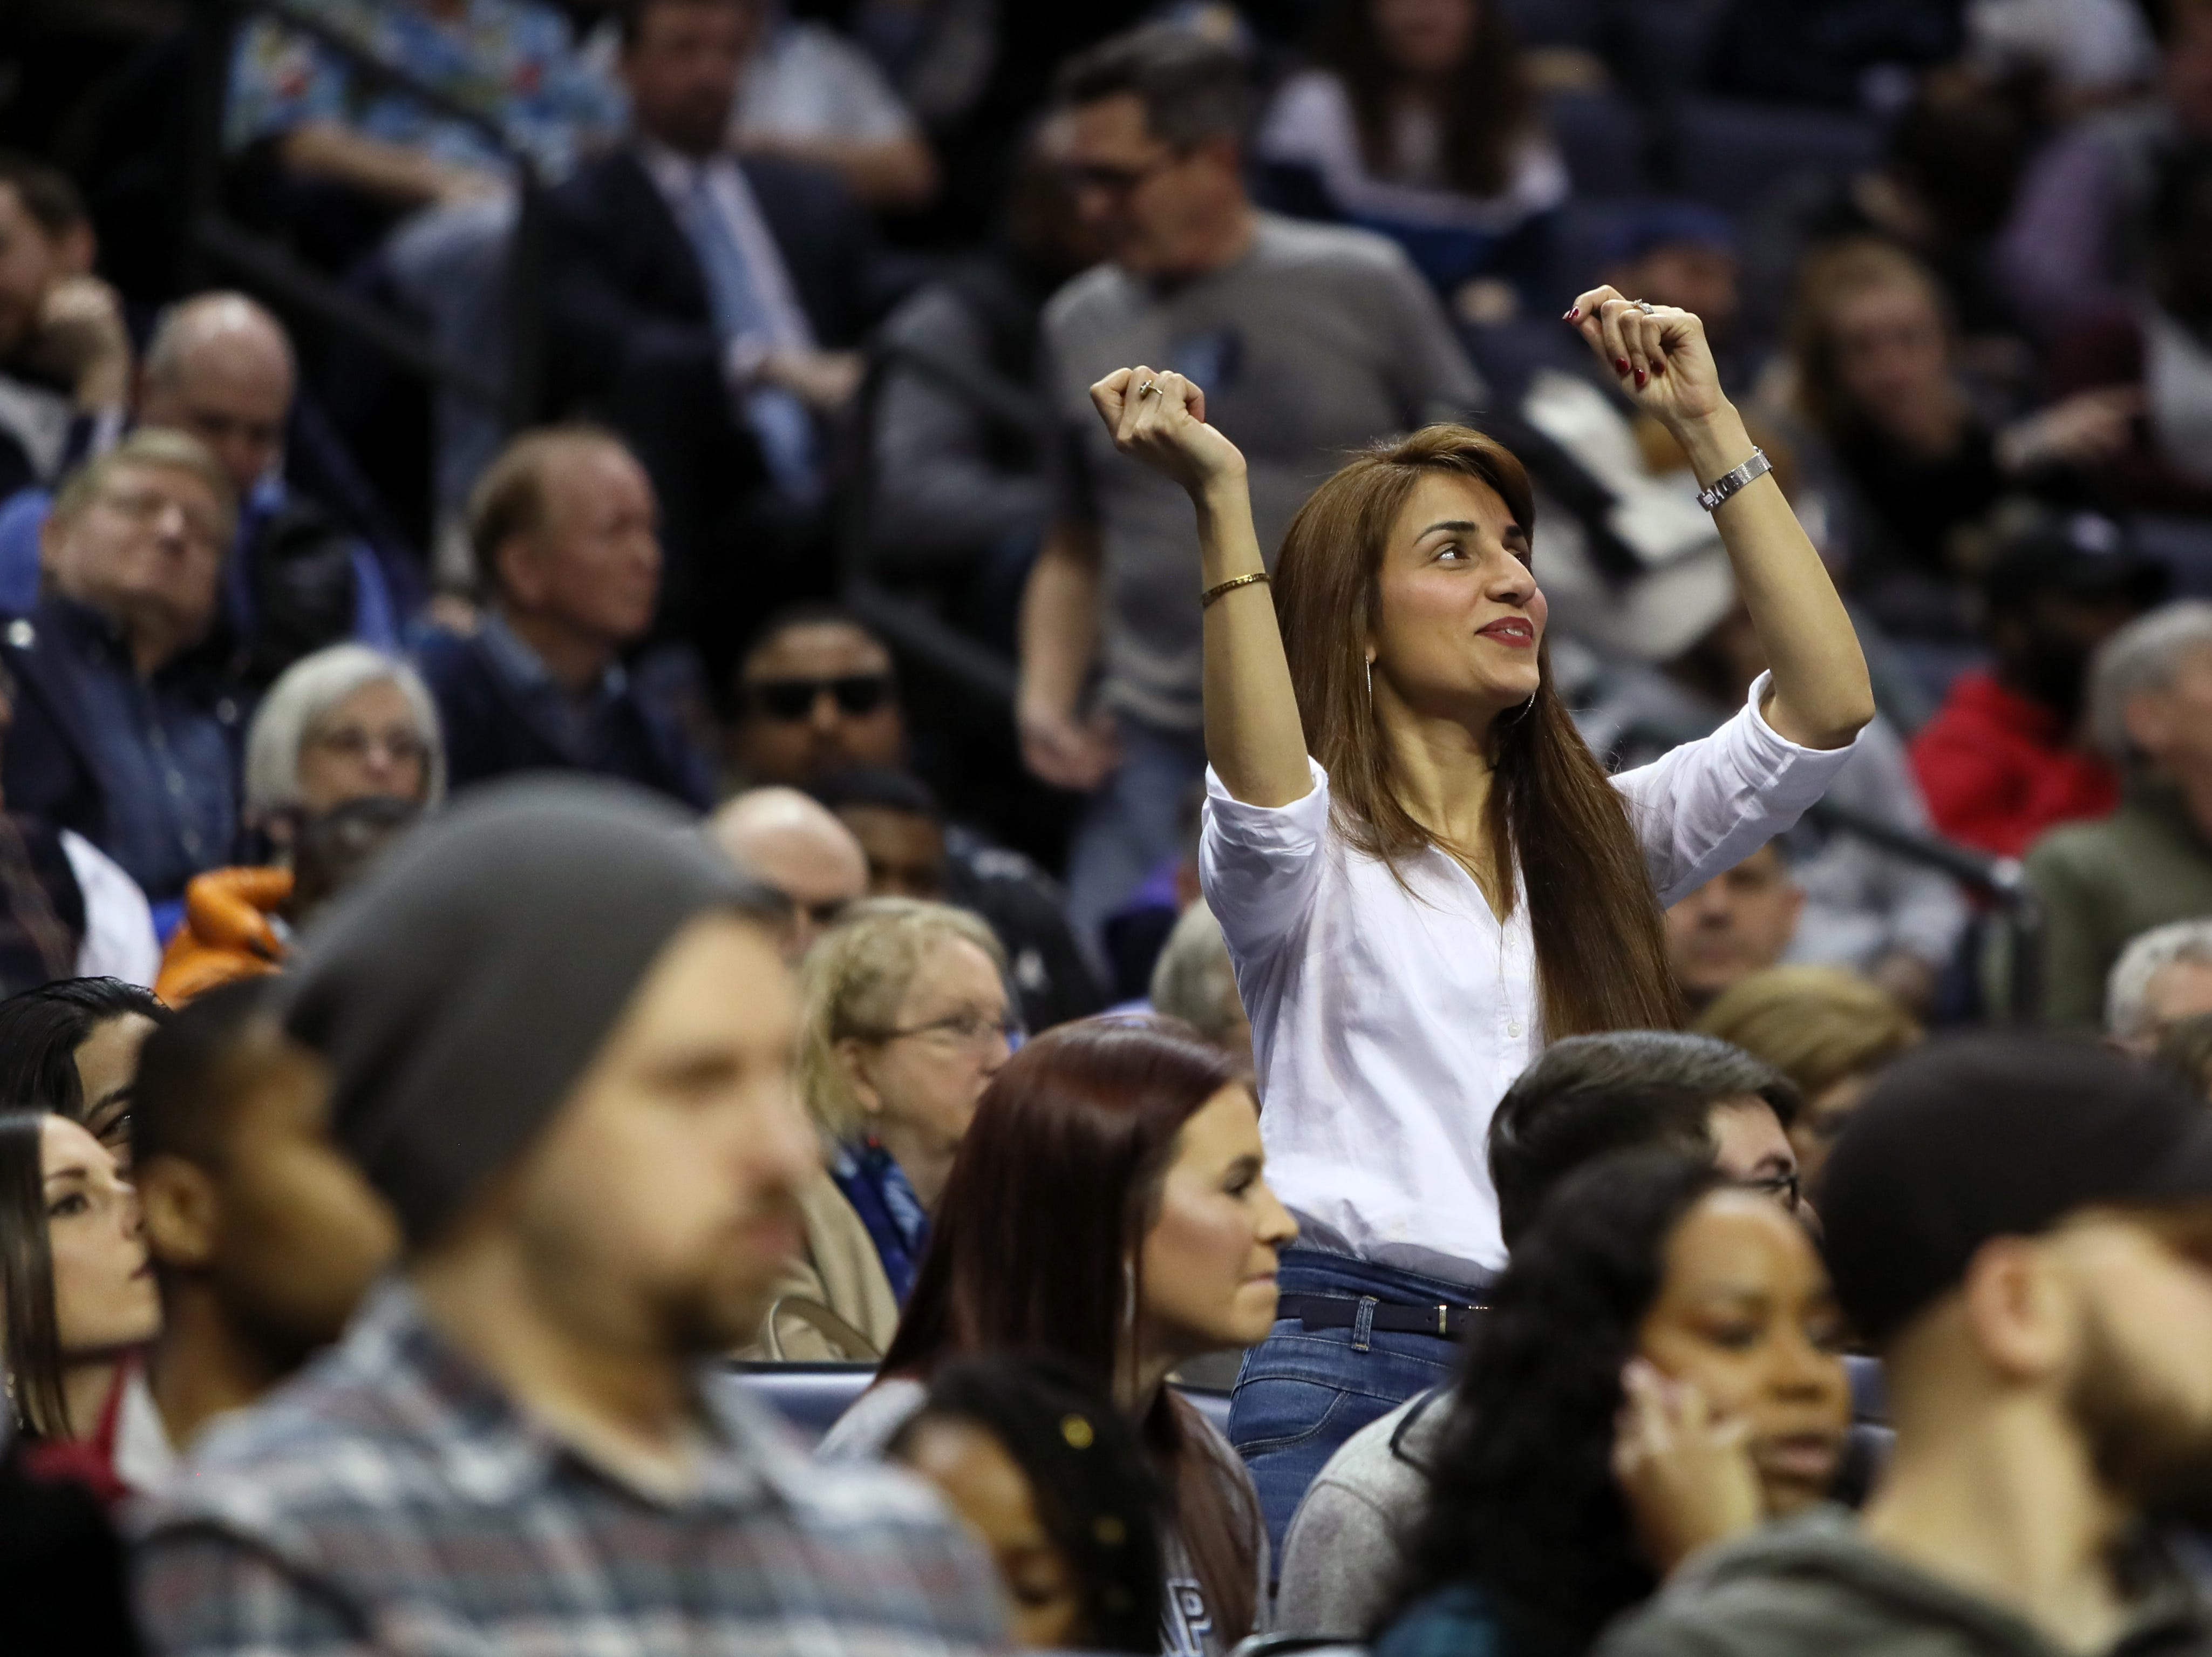 Memphis Grizzlies fans cheer on their team as they play the San Antonio Spurs at the FedExForum on Wednesday, Jan. 9, 2019.